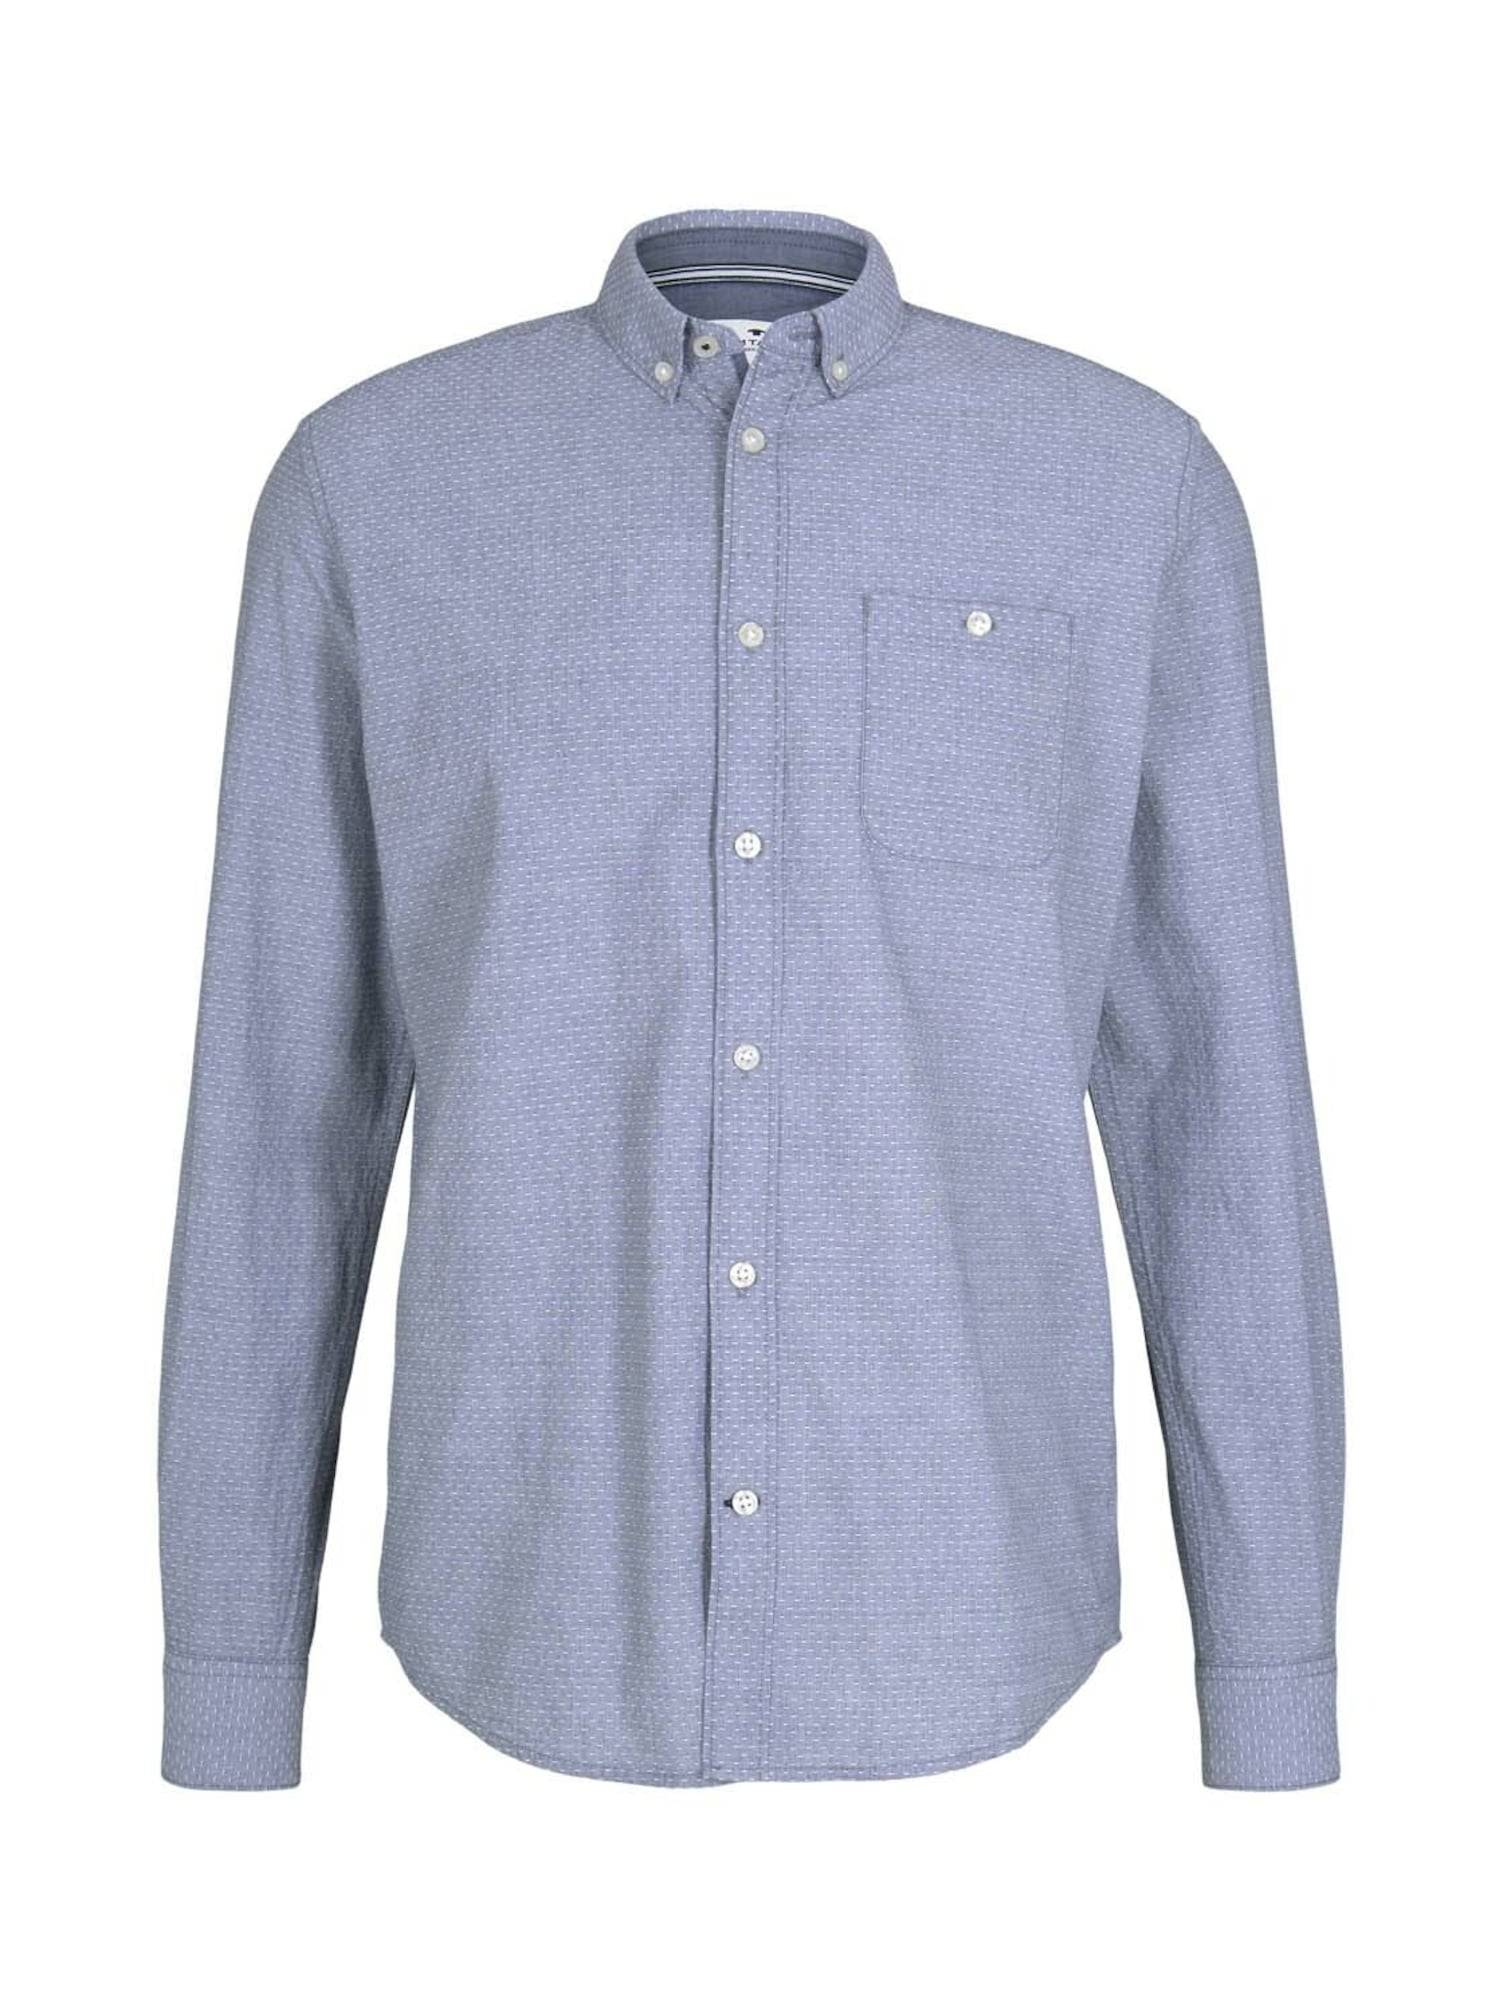 TOM TAILOR Chemise  - Bleu - Taille: M - male